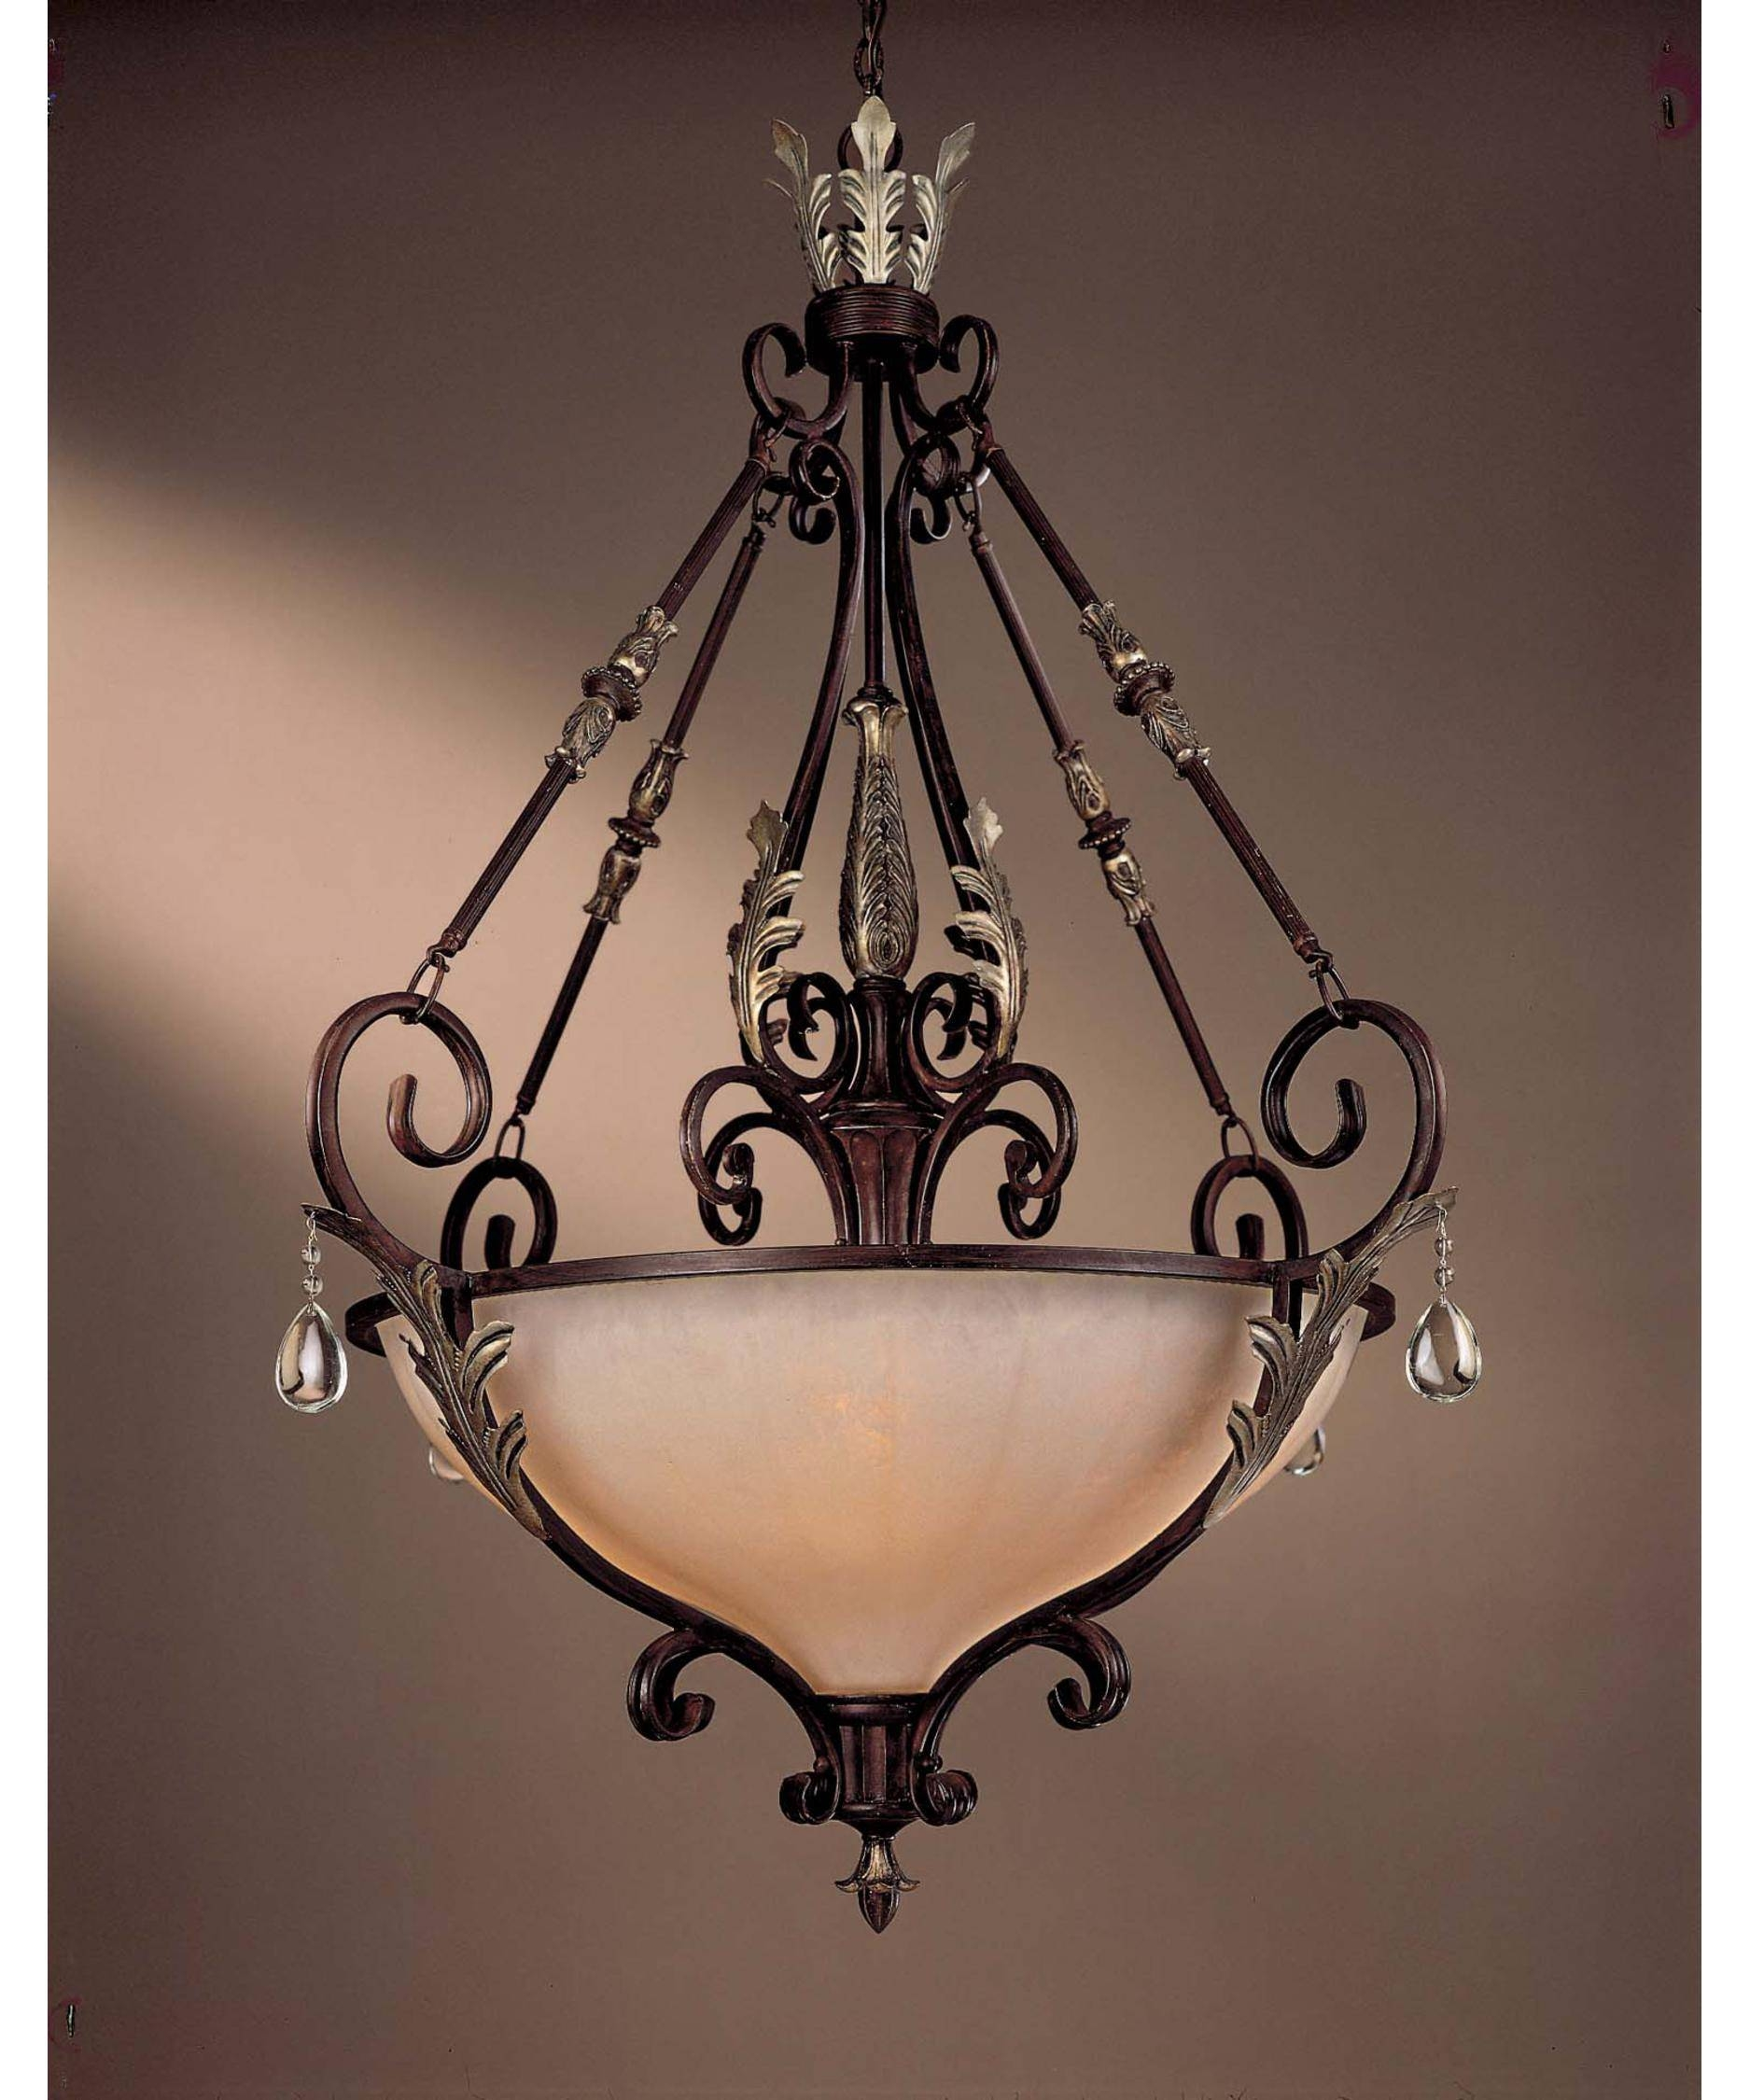 Minka Lavery 771 Bellasera 42 Inch Wide 5 Light Large Pendant pertaining to Minka Lavery Pendant Lights (Image 5 of 15)